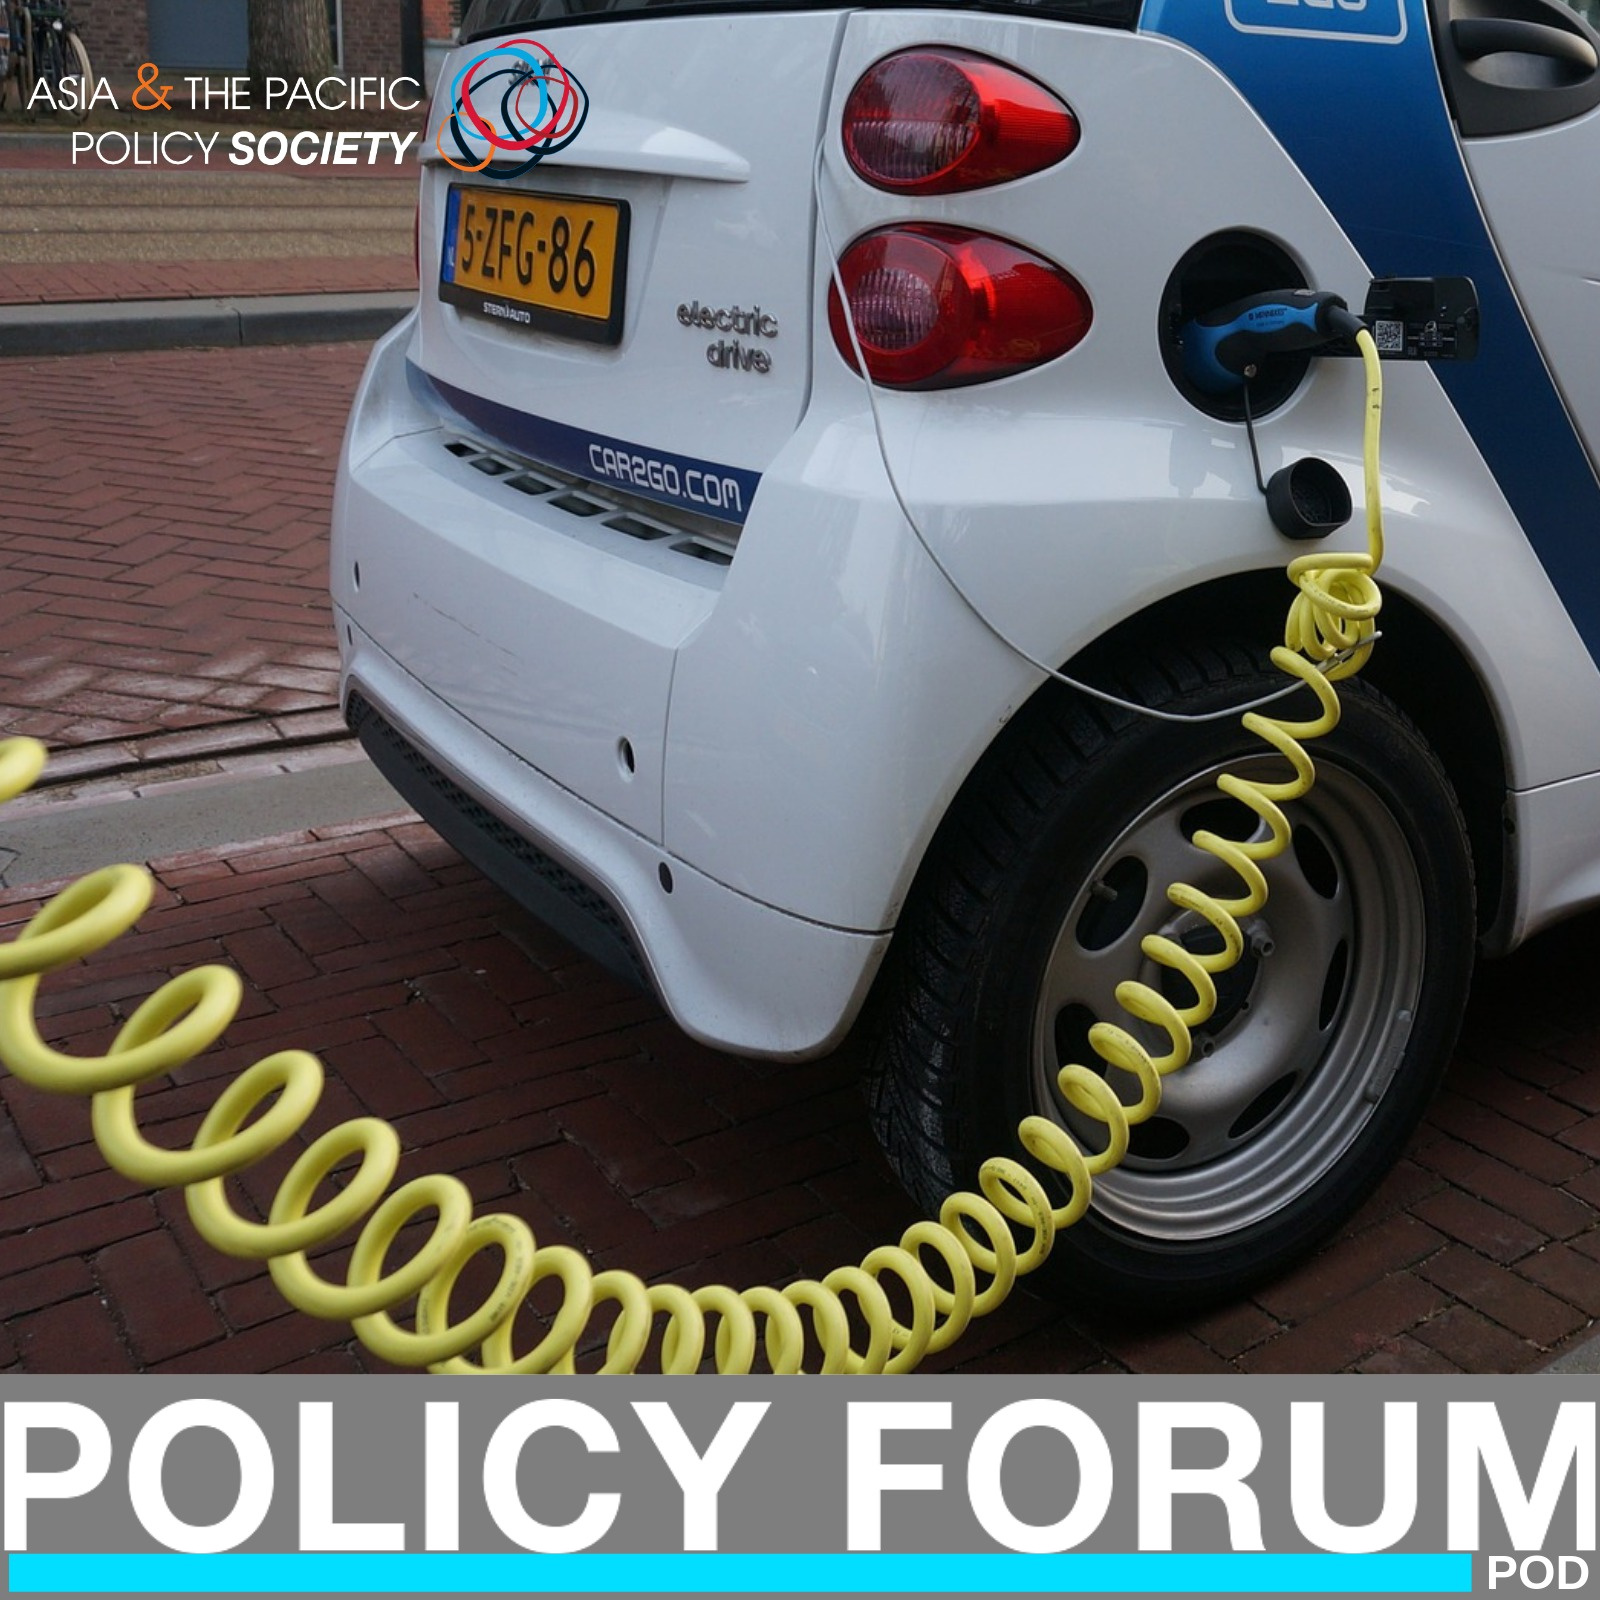 Driving electric vehicle policy